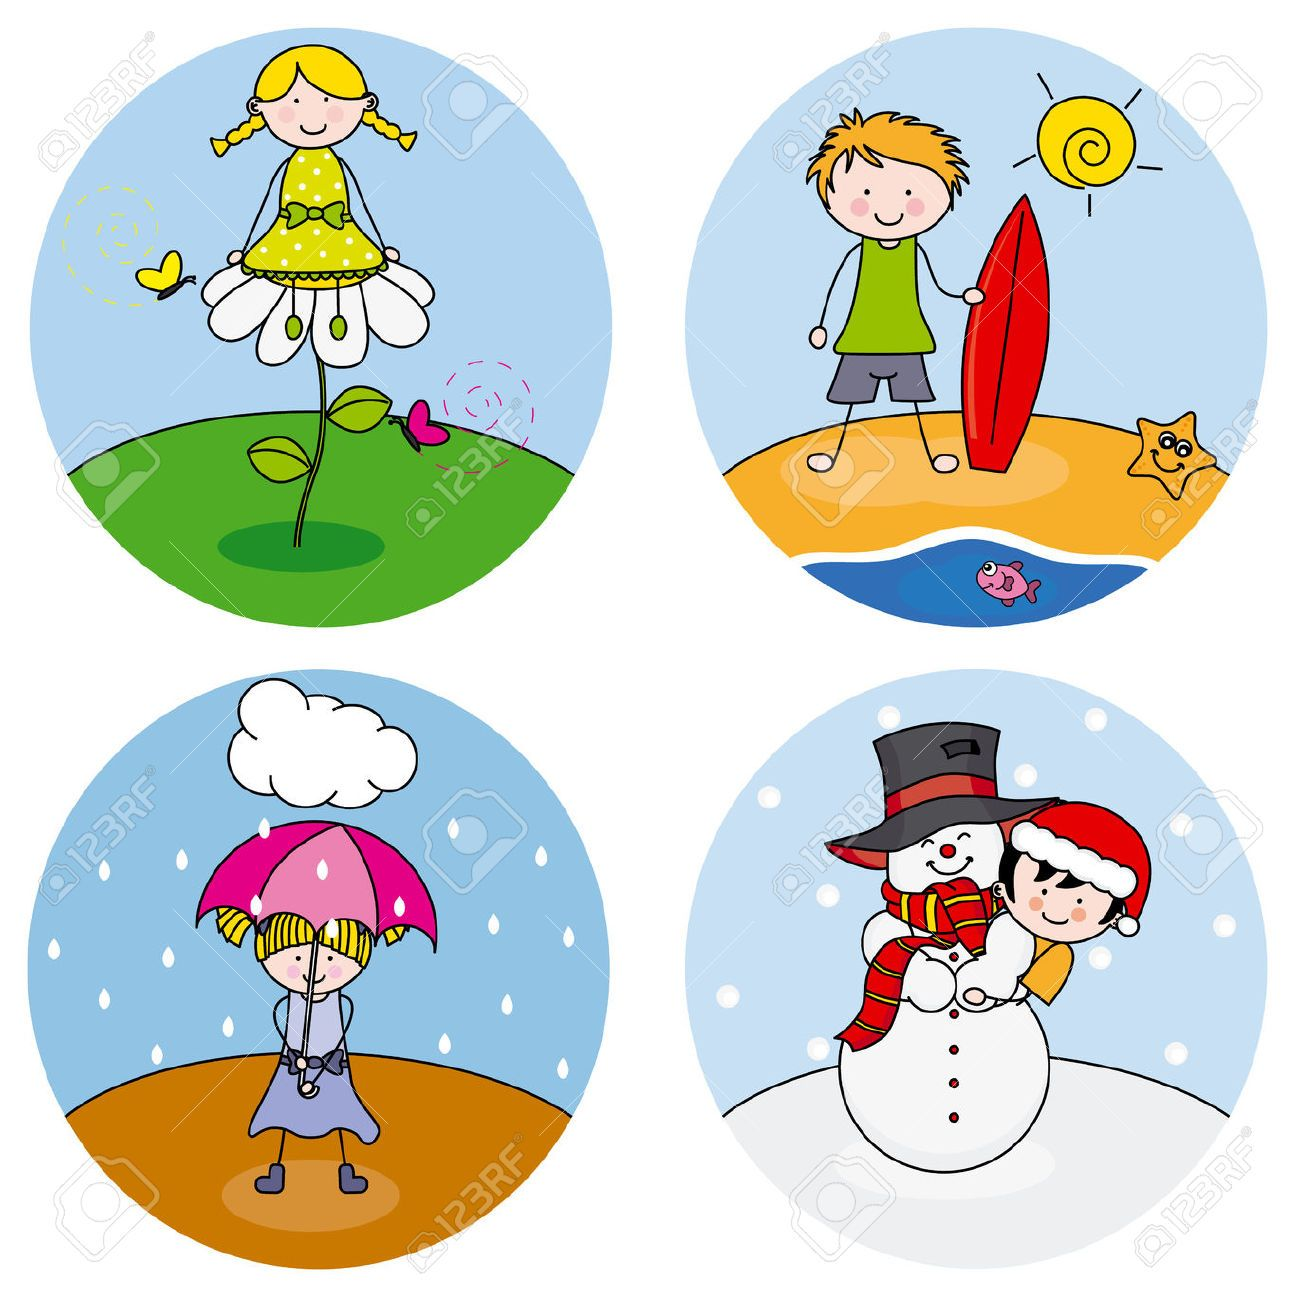 Four seasons clipart free 7 » Clipart Portal.